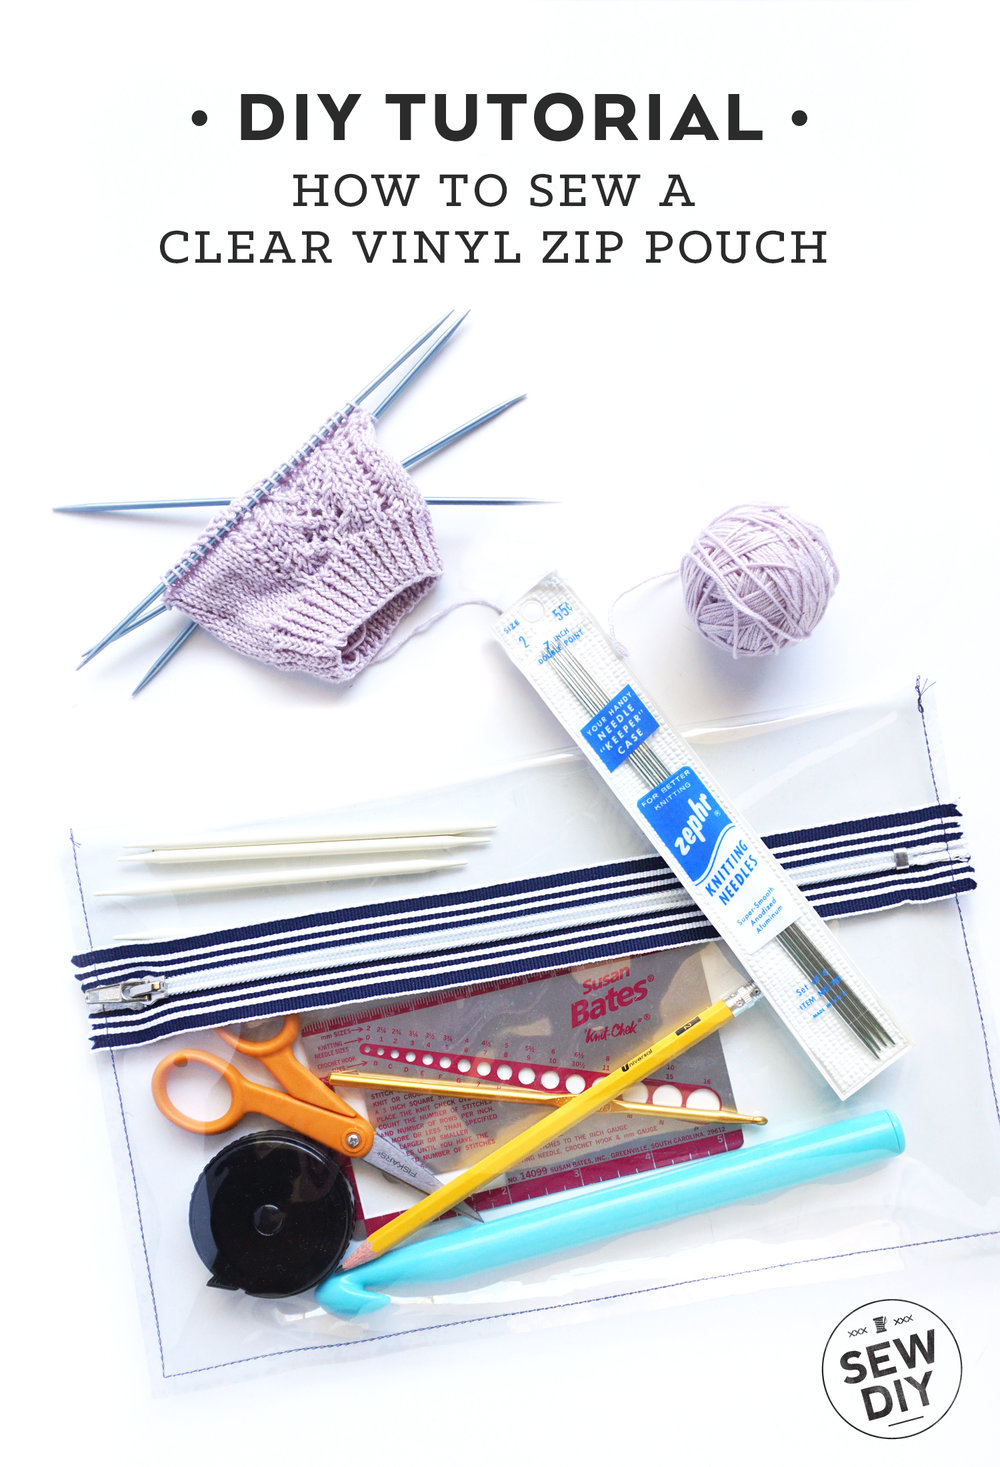 DIY Tutorial – How to sew a Clear Vinyl Zippered Pouch | Sew DIY